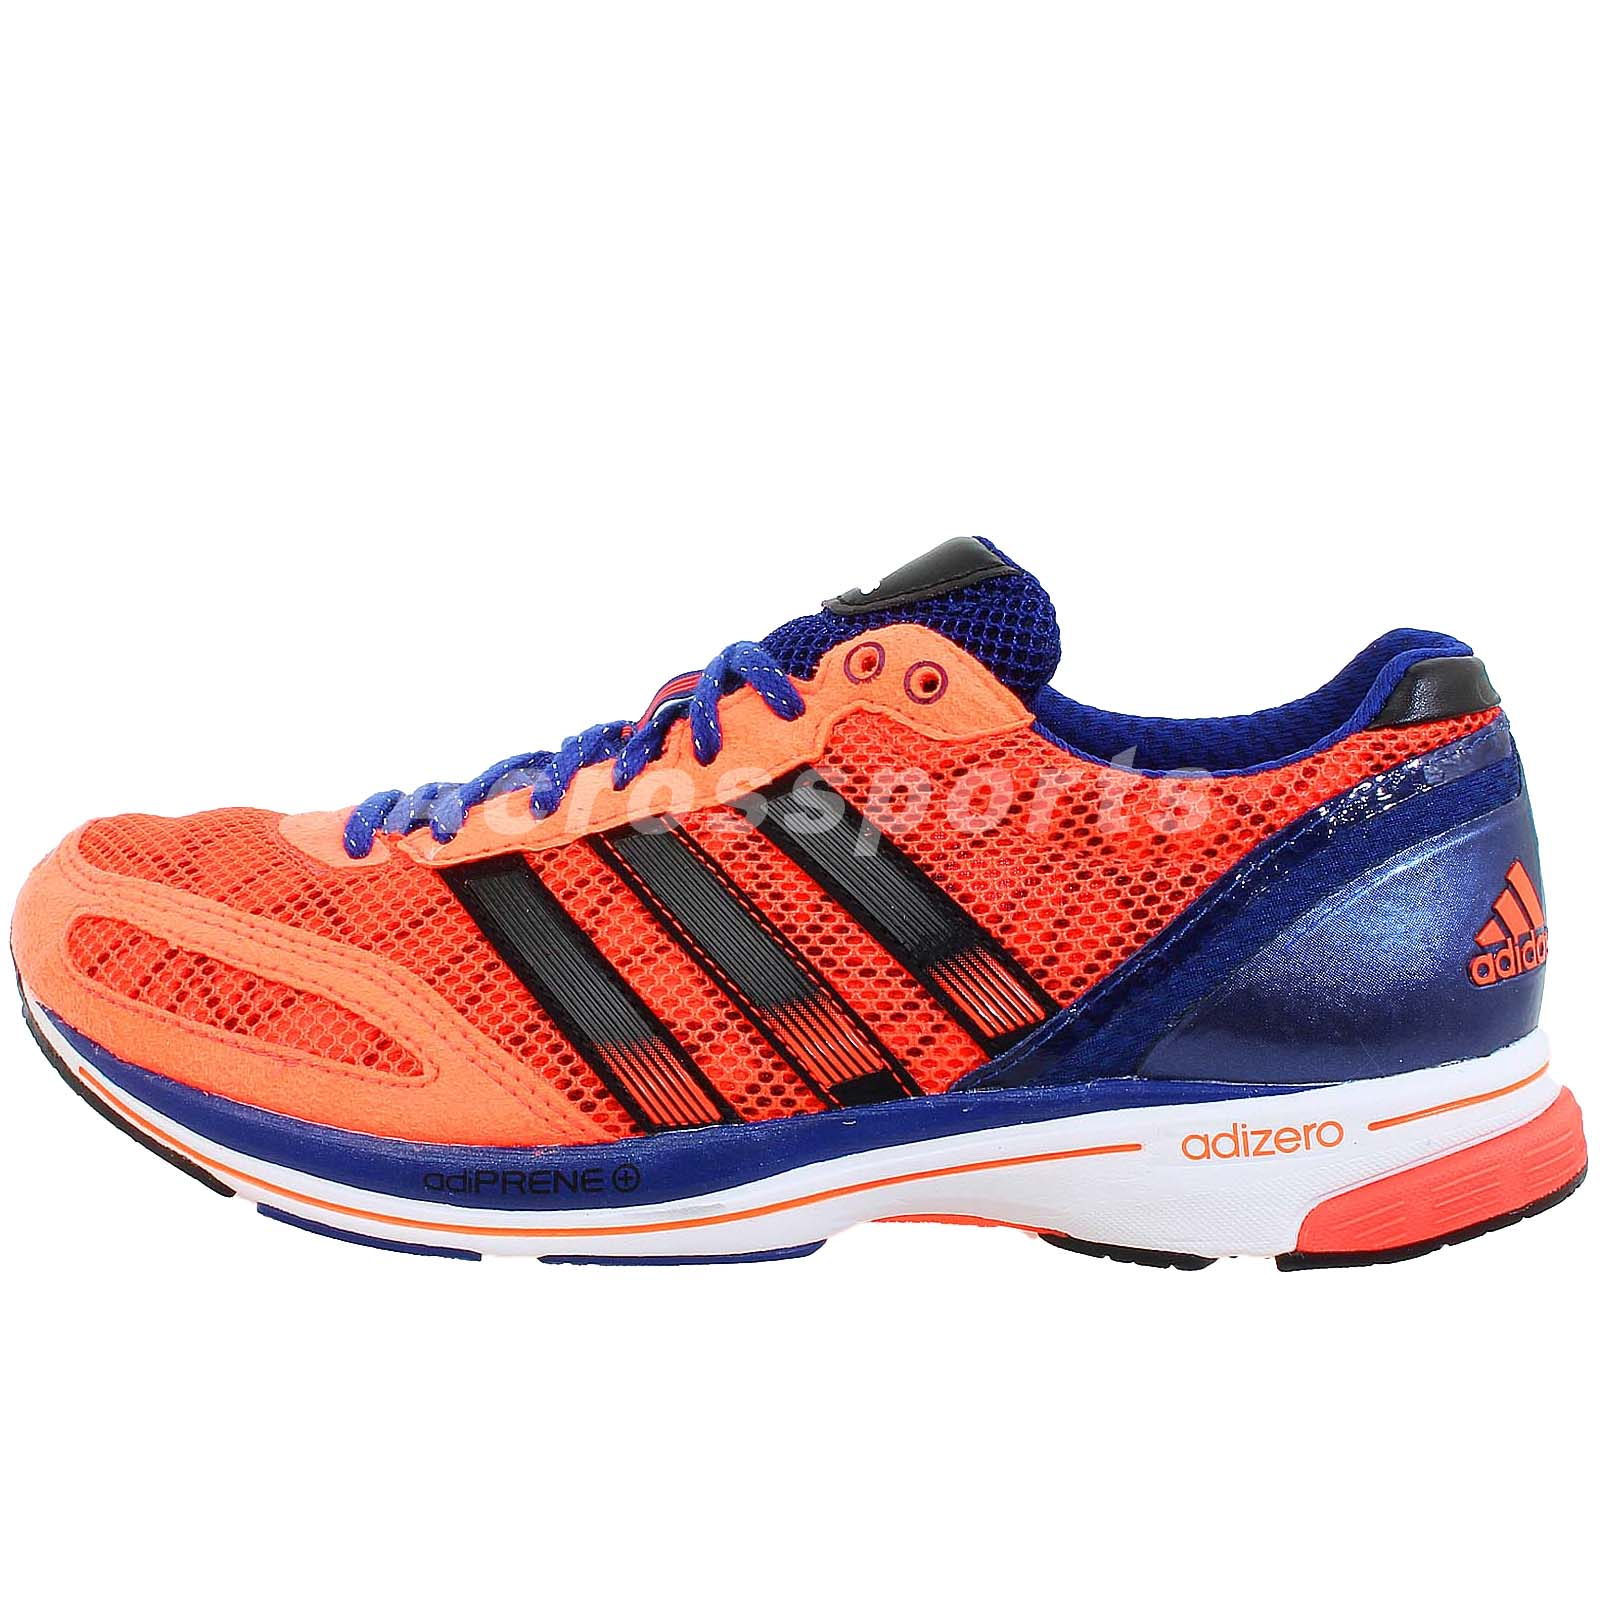 Shoes For Men 2013 Adidas Adidas adizero ...